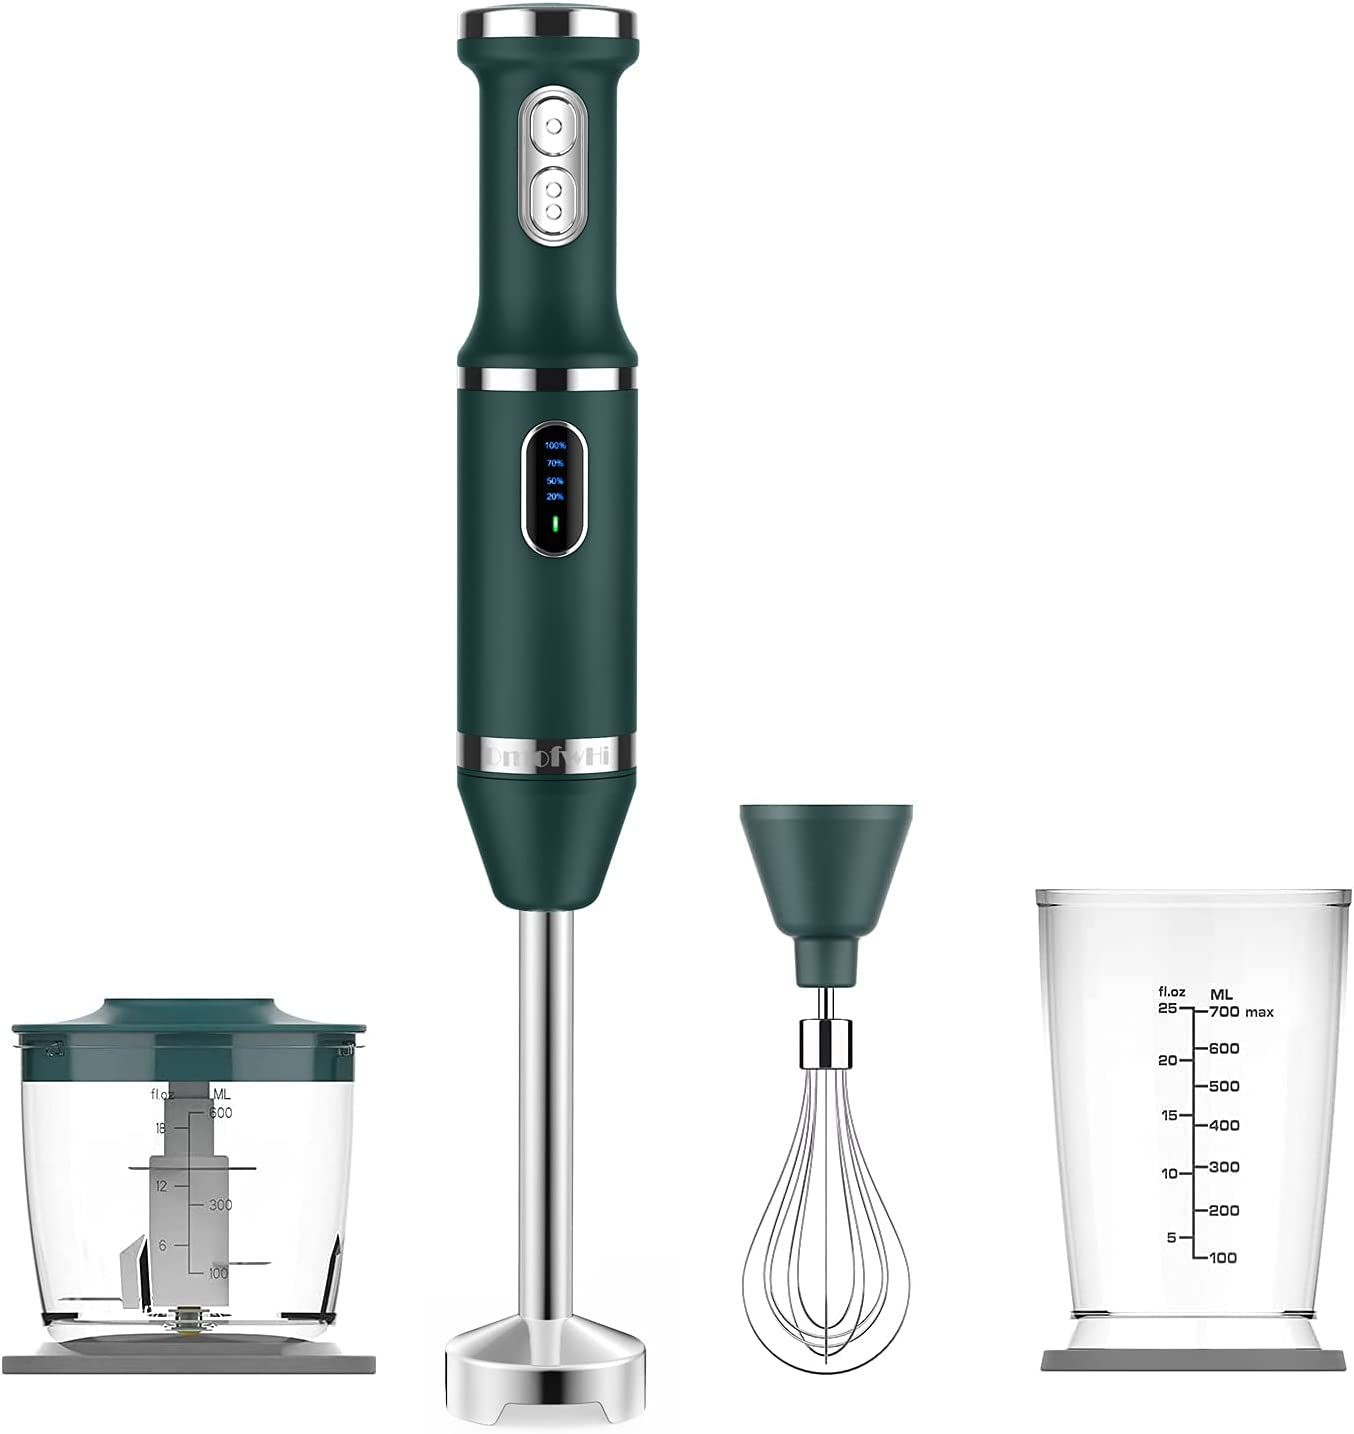 Cordless Hand Blender Electric, DmofwHi USB-C Rechargeable Immersion Blender with Whisk,Chopper and Beaker,2 Speed, 4-in-1 Handheld Stick Blender for Smoothies,Puree, Sauces-Green